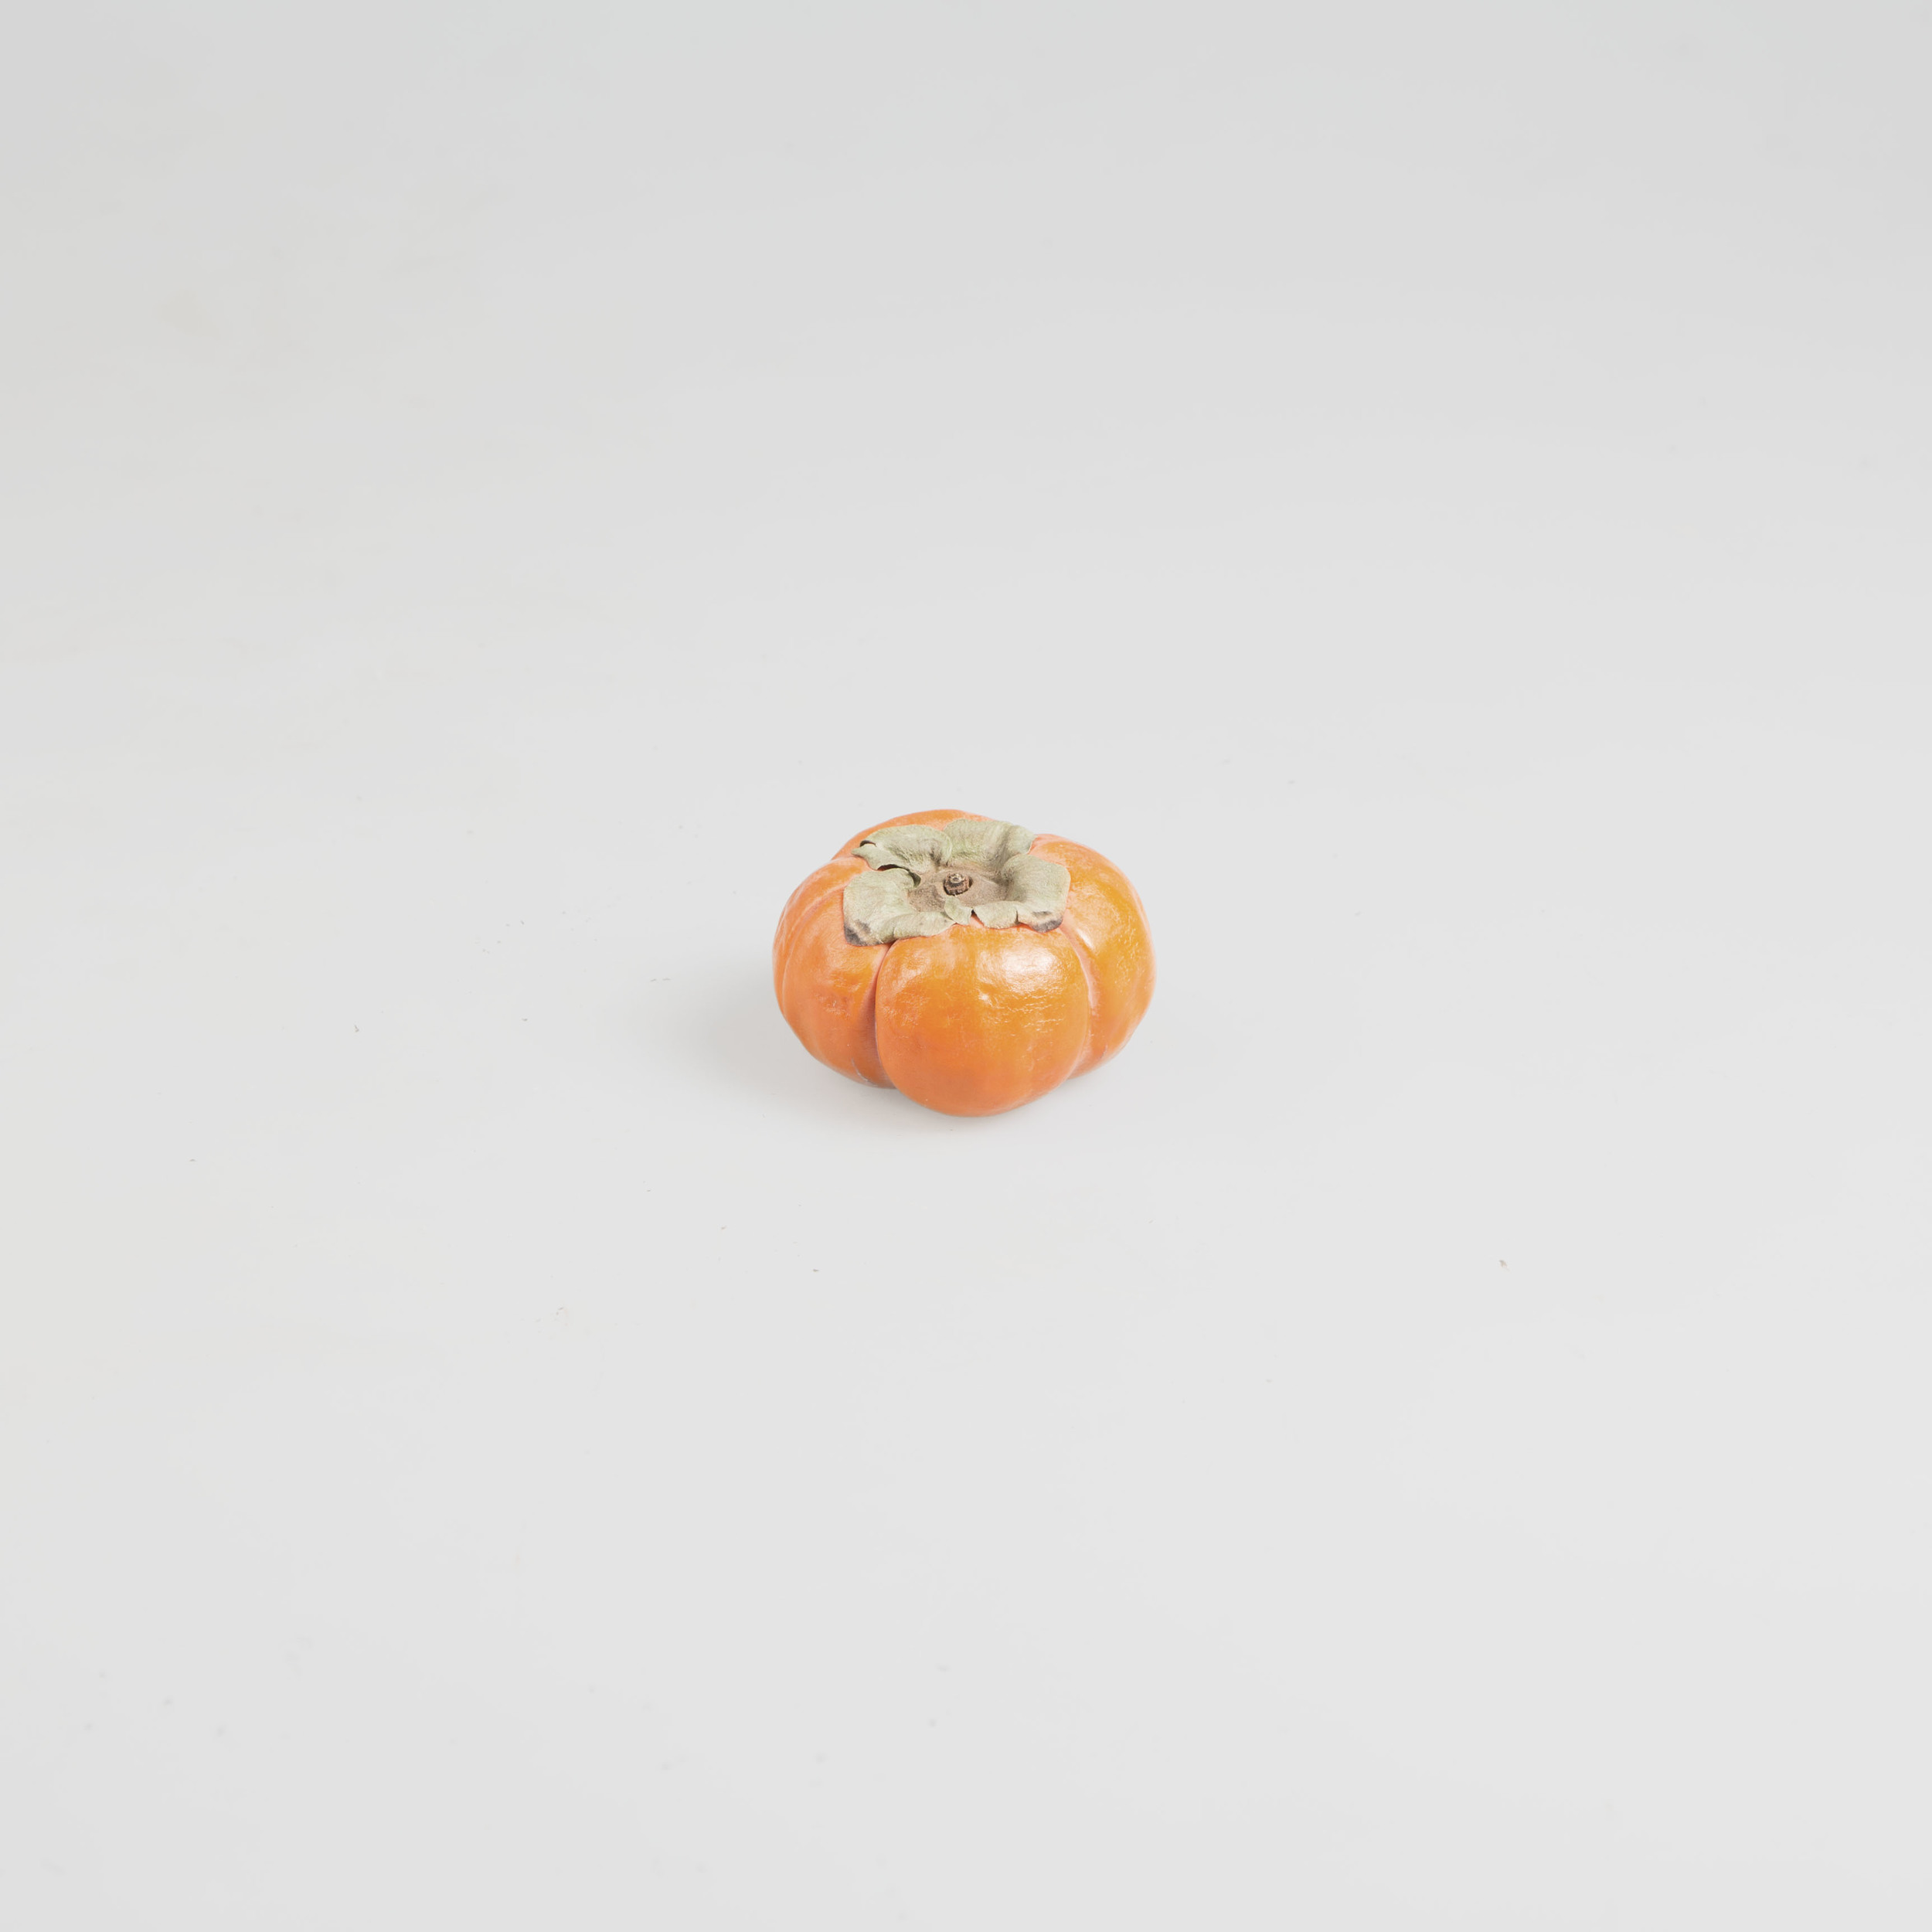 29_Oct_Persimmon copy.jpg